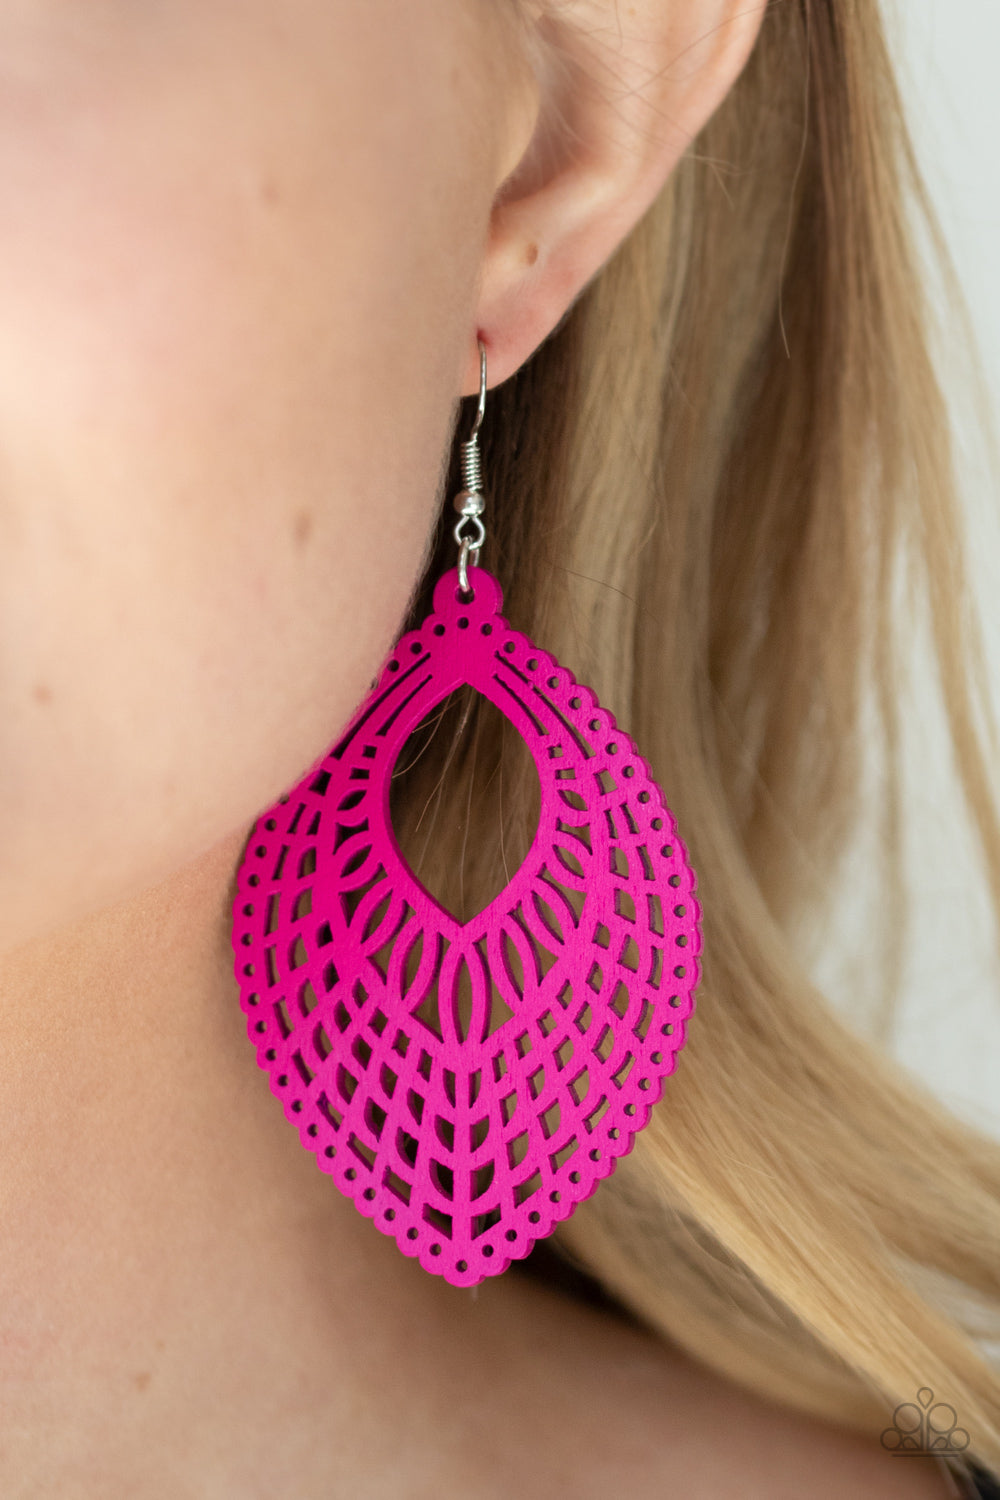 Paparazzi Jewelry & Accessories - One Beach At A Time - Pink Earrings. Bling By Titia Boutique